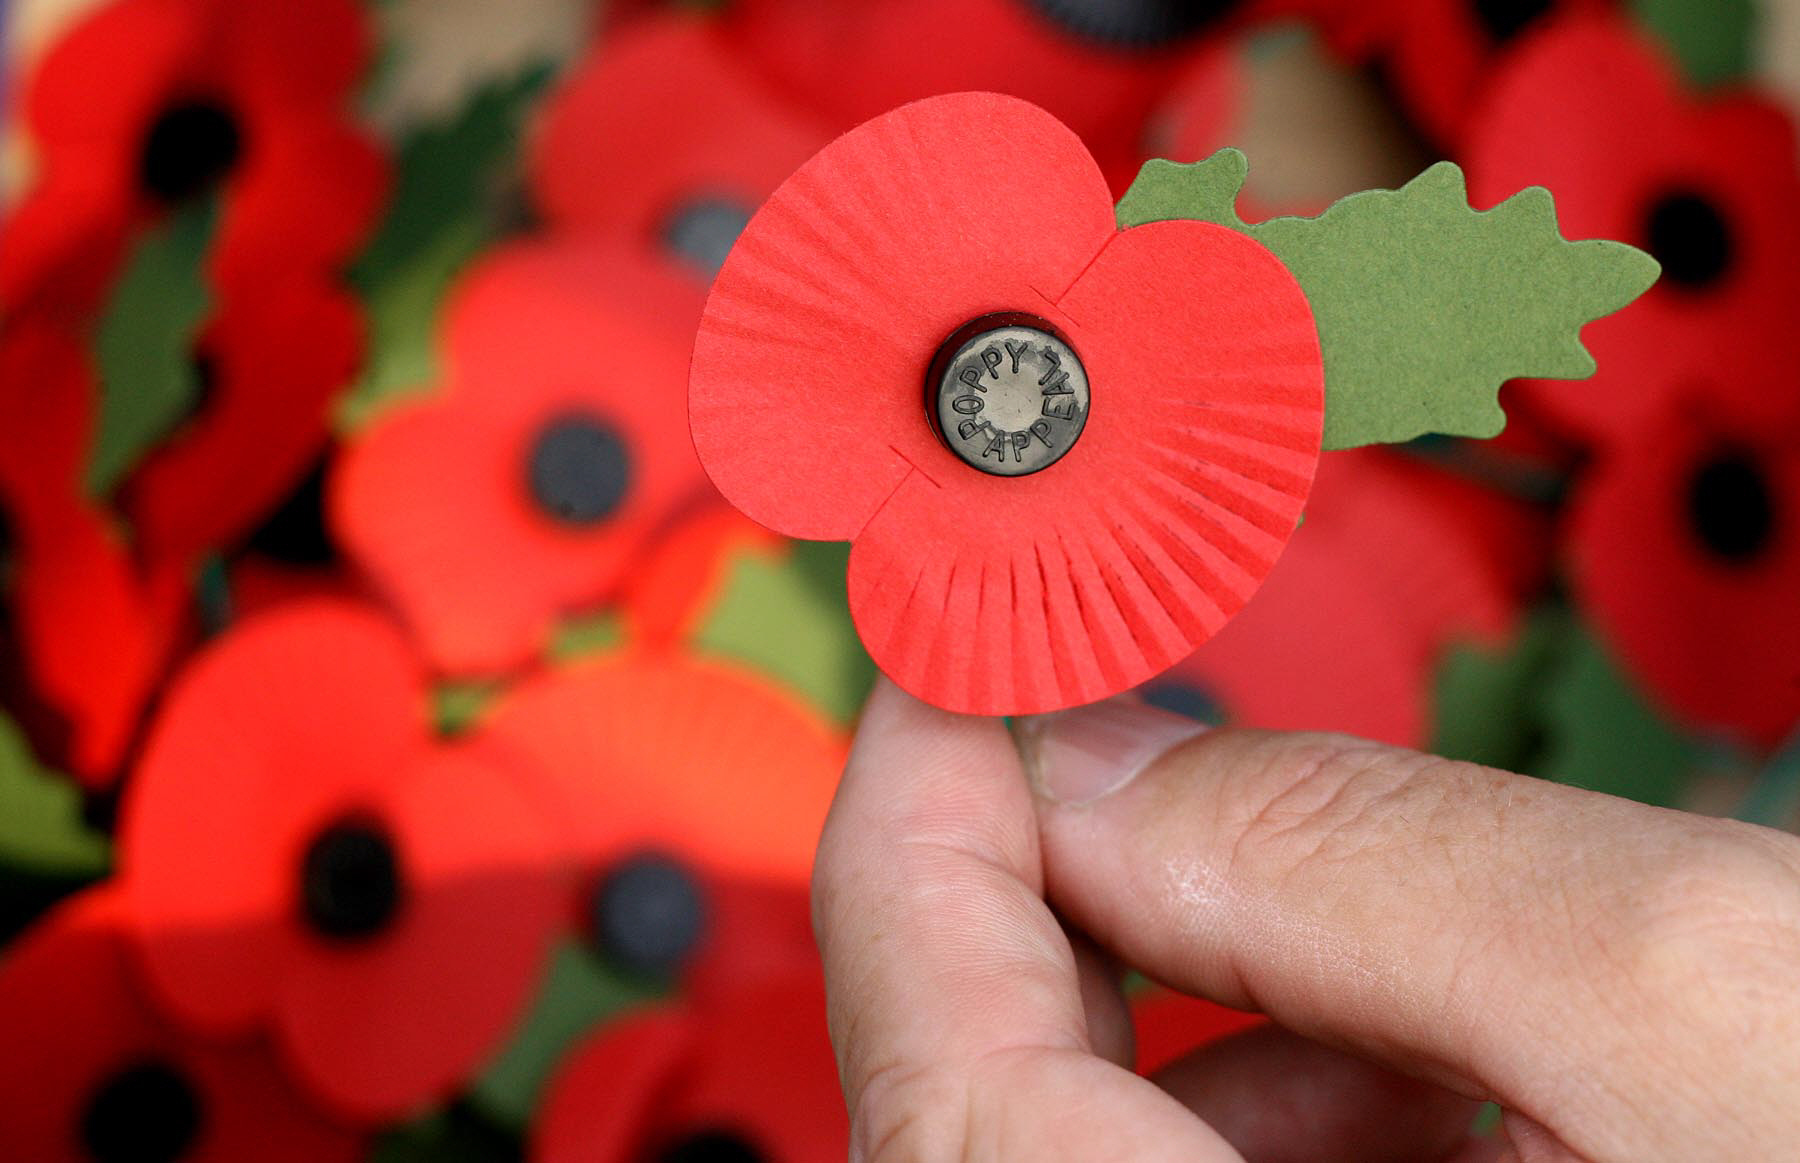 APPEAL: The Ripon Community Poppy Project has been launched